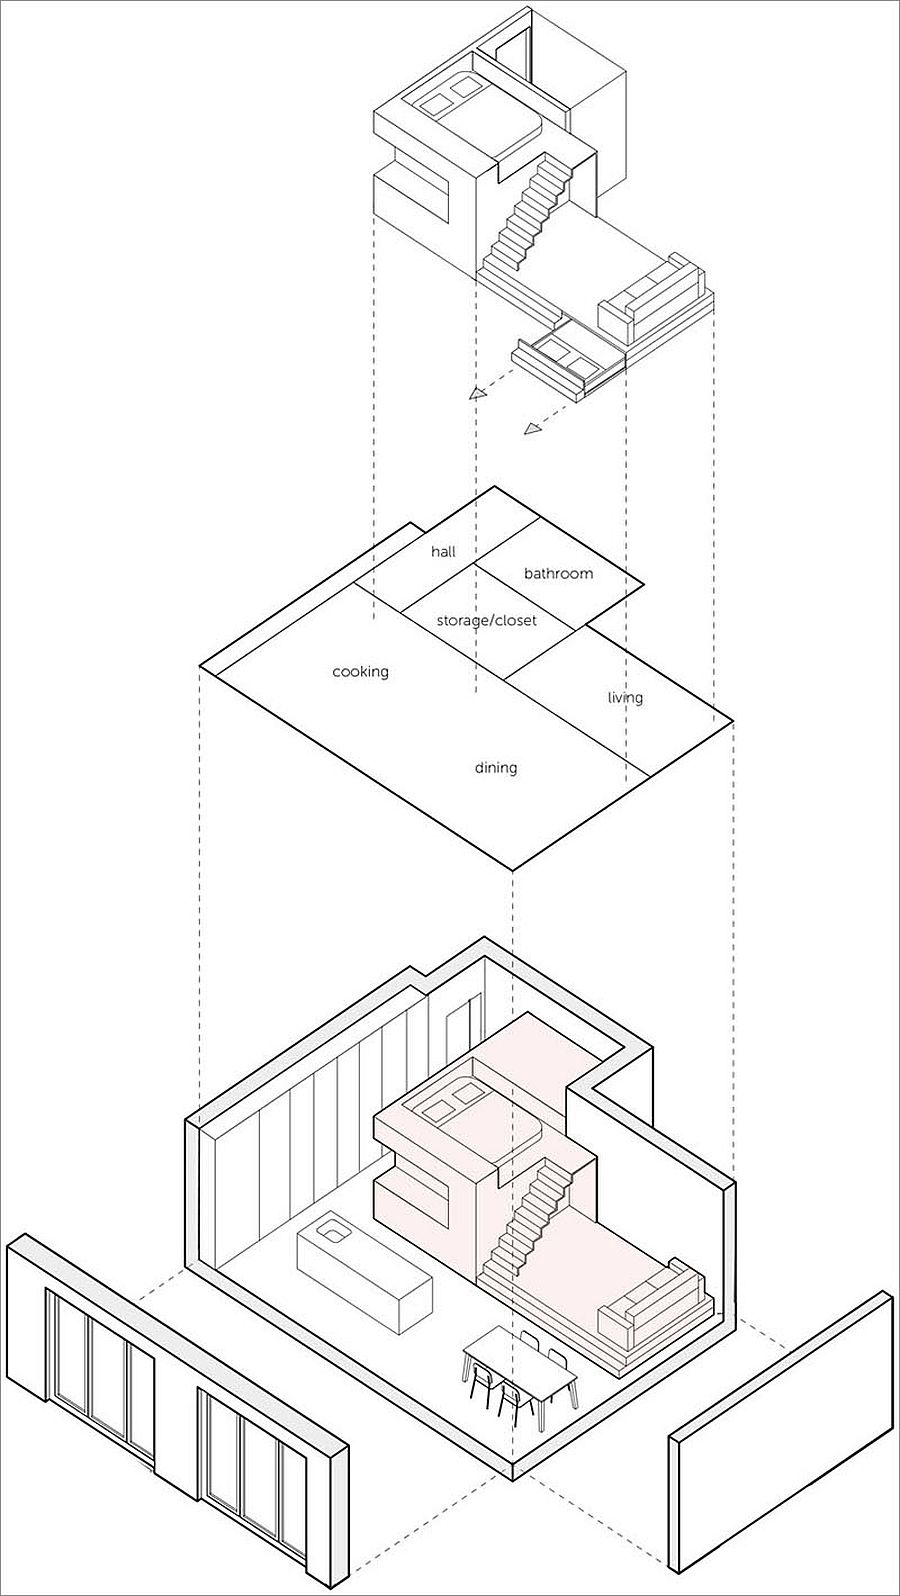 Design plan of tiny loft apartment in Amsterdam